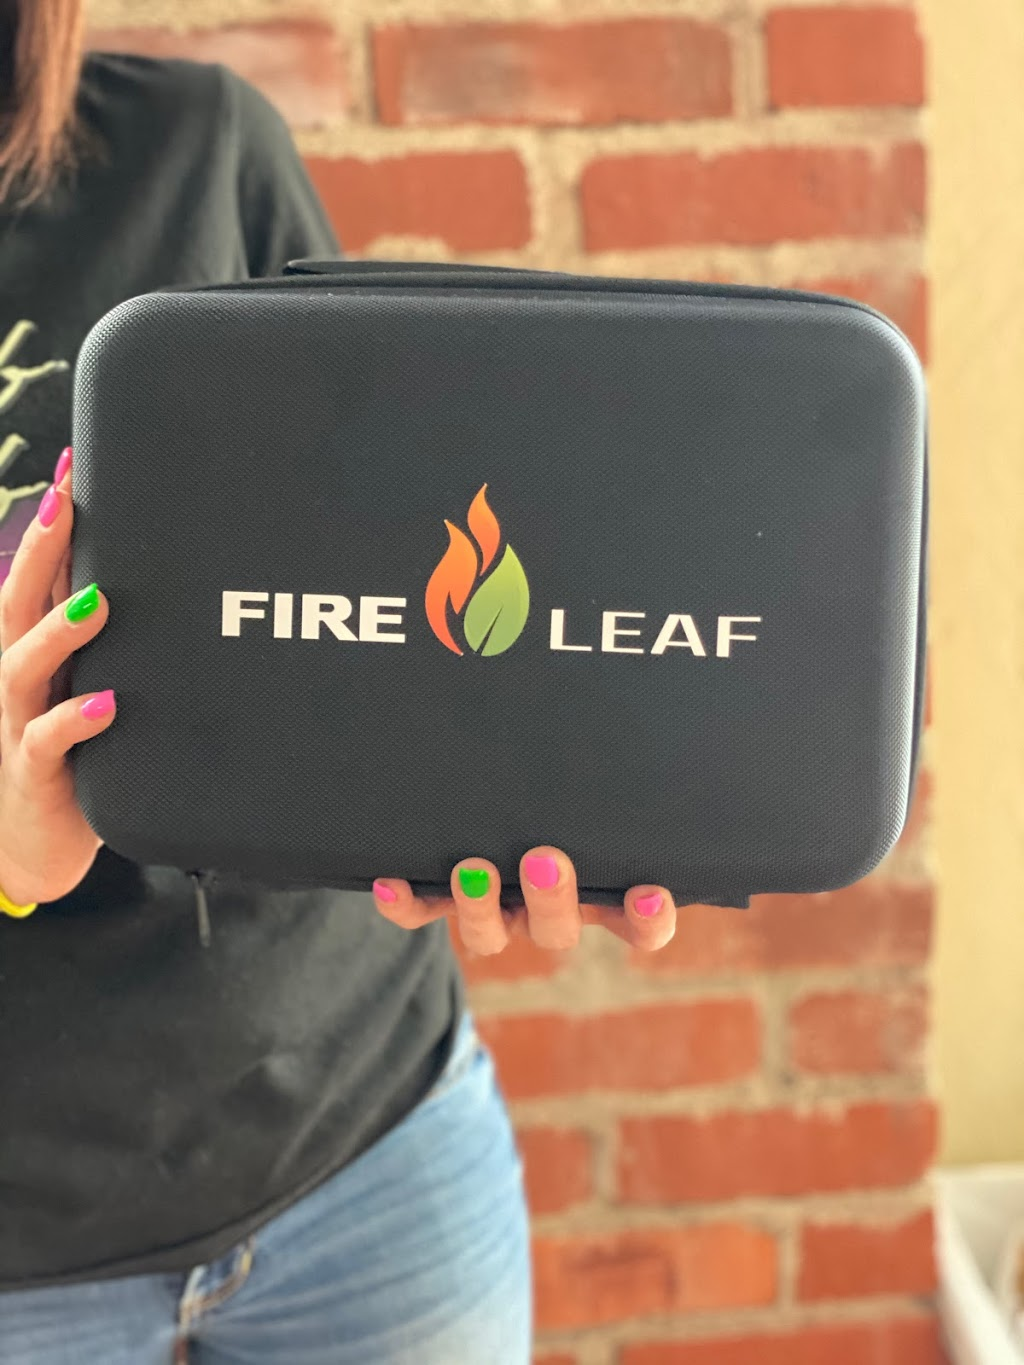 Fire Leaf Dispensary in Norman Oklahoma - pharmacy  | Photo 8 of 10 | Address: 751 S Canadian Trails Dr #120, Norman, OK 73072, USA | Phone: (405) 310-2433